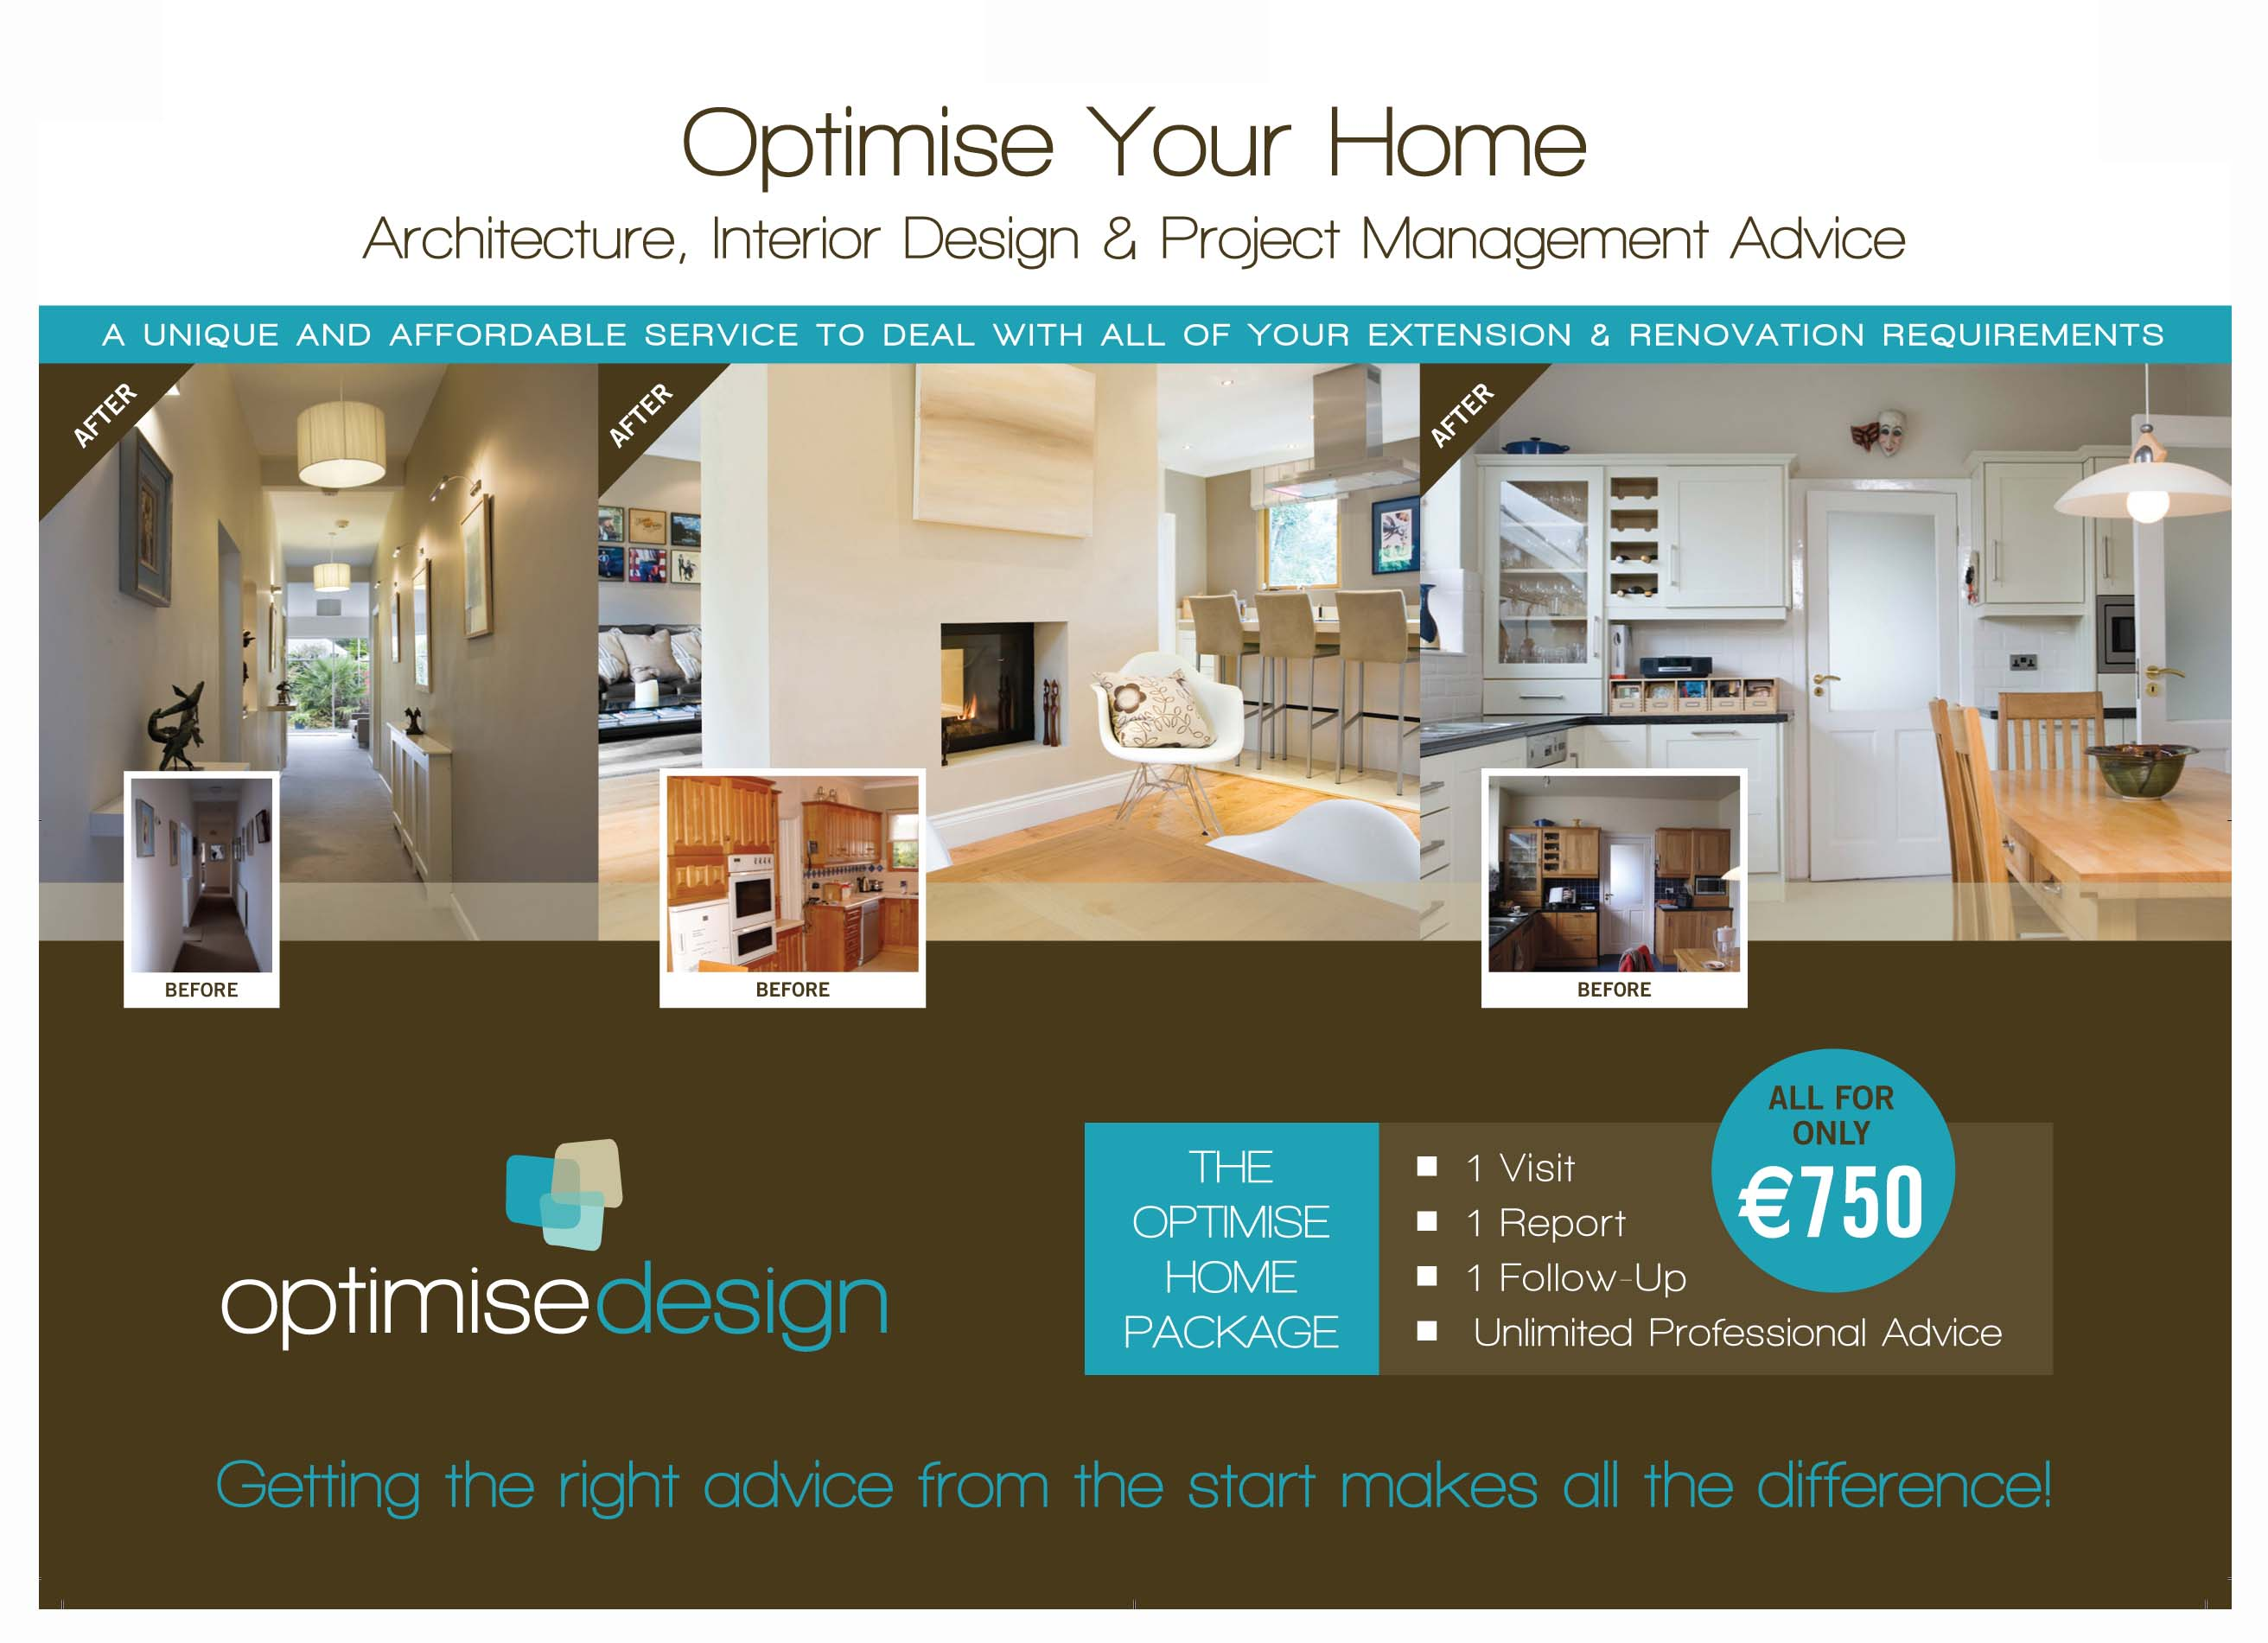 Interior Design Clinic | The Optimise Design Blog